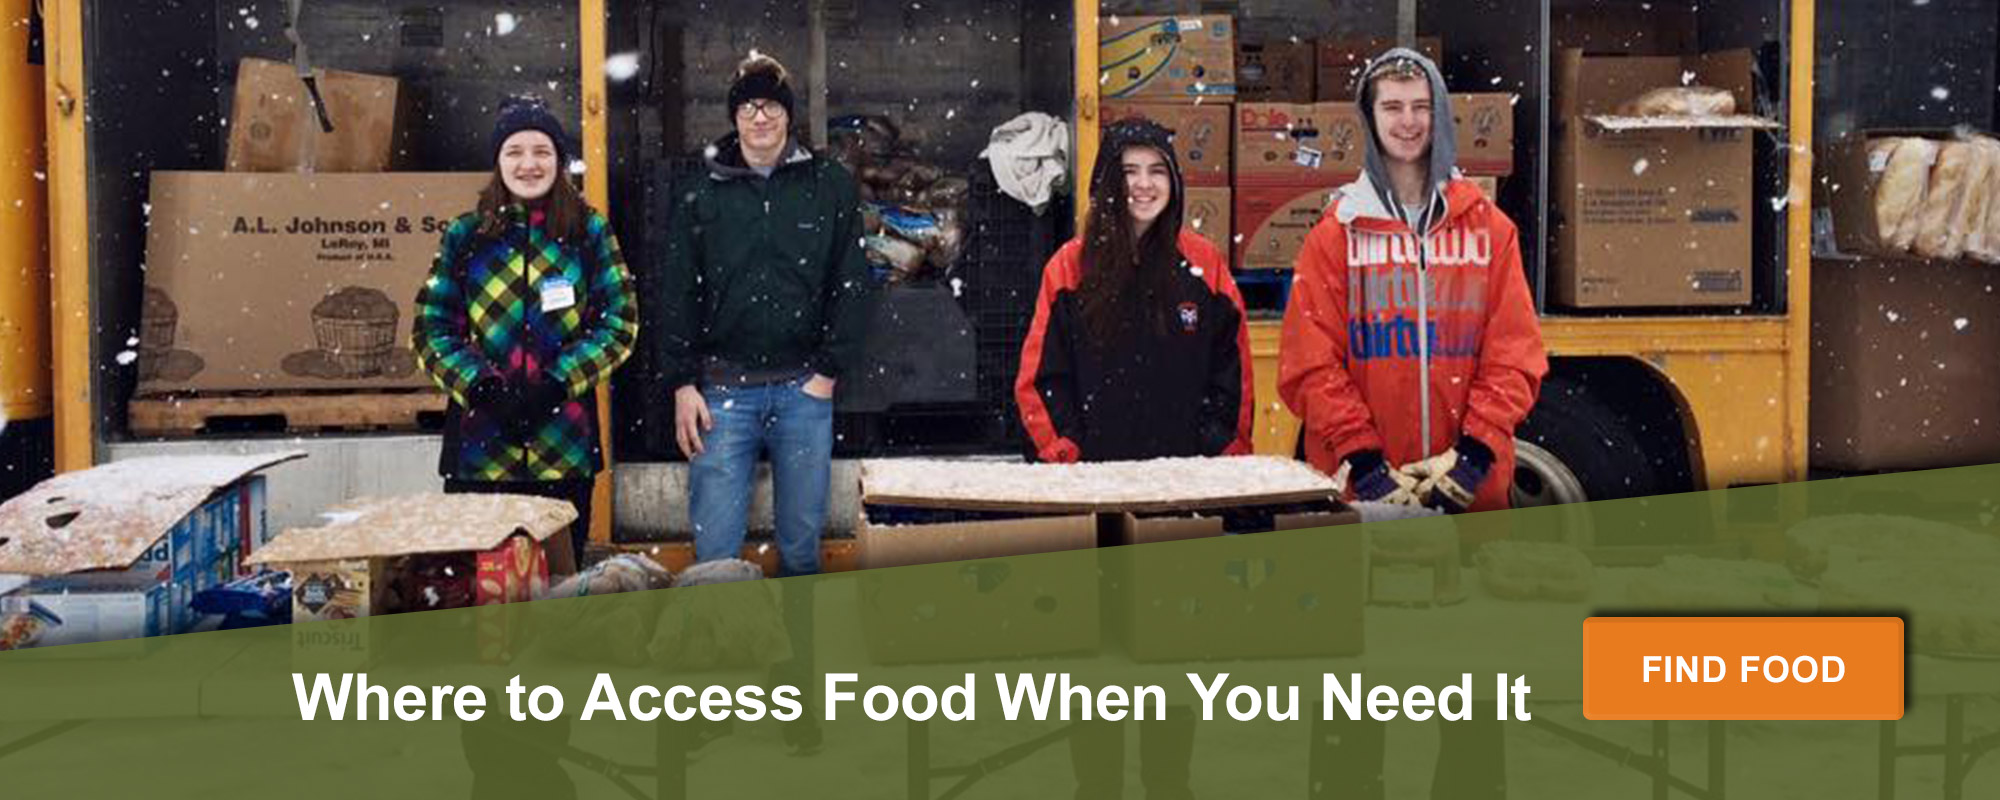 Where to access food when you need it. Find food here.